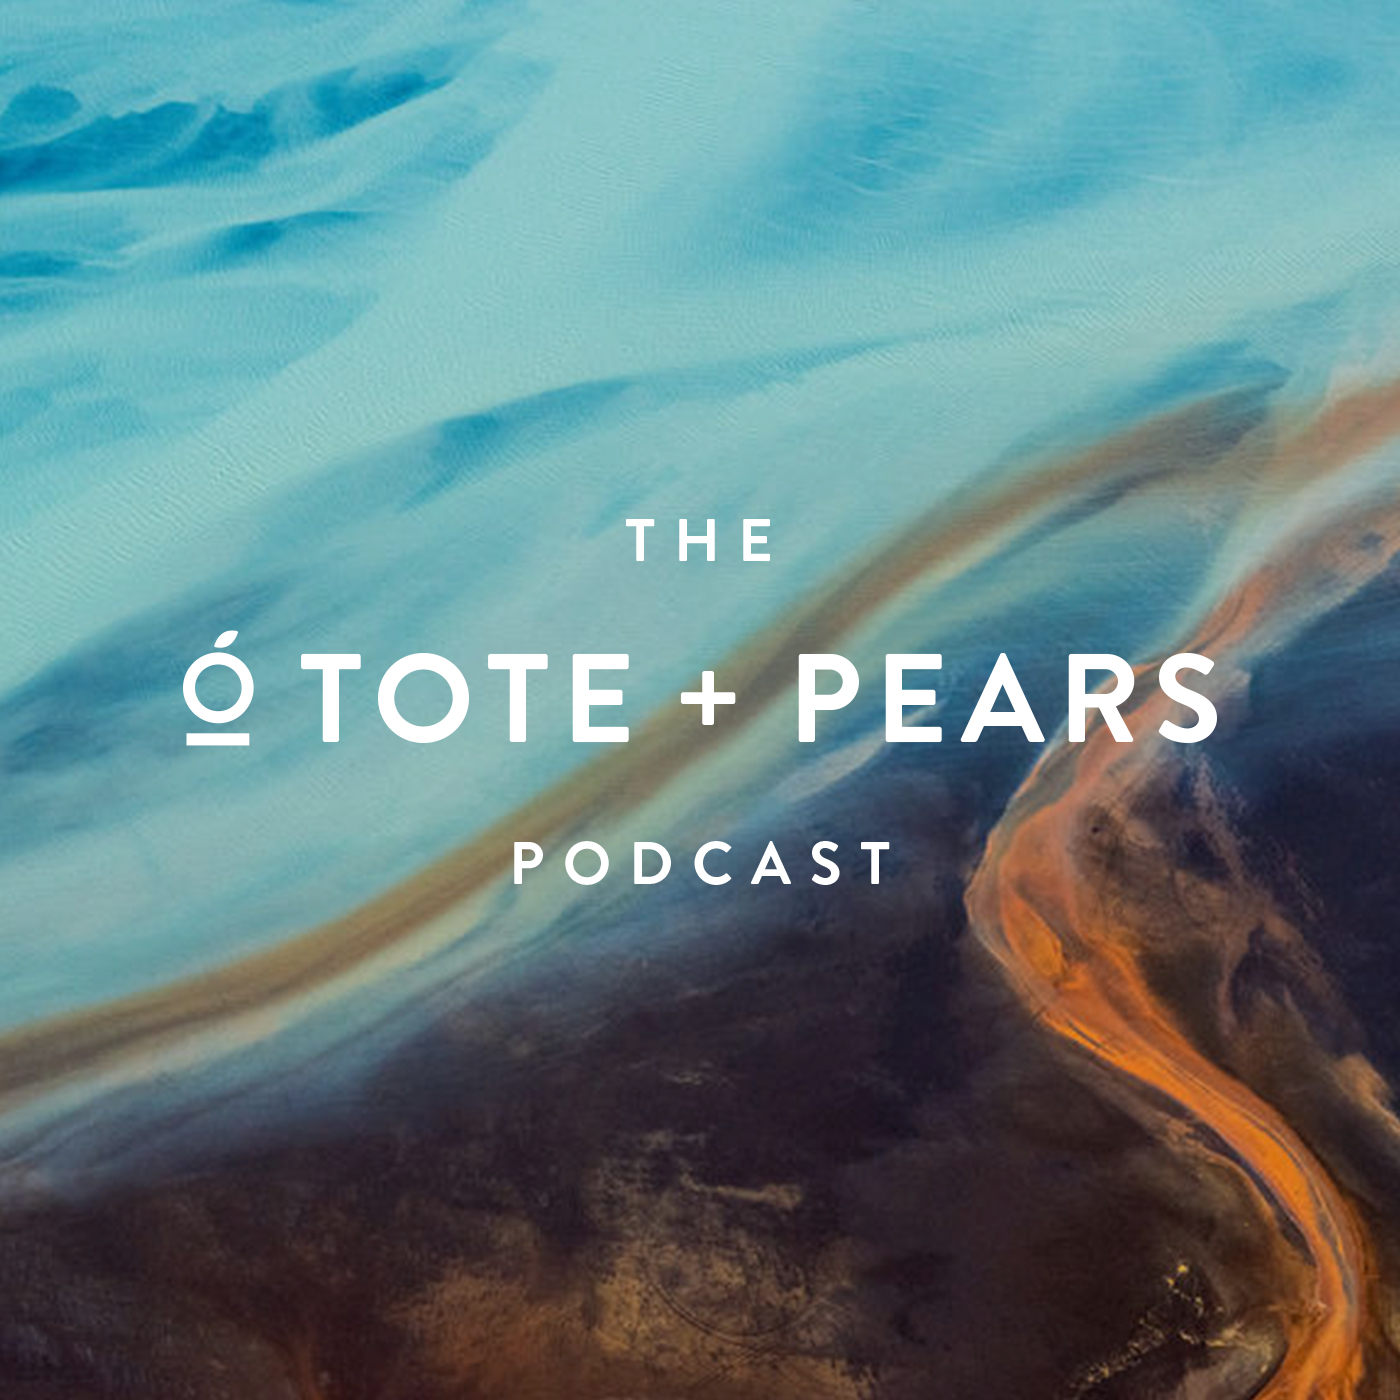 The Tote + Pears Podcast show image